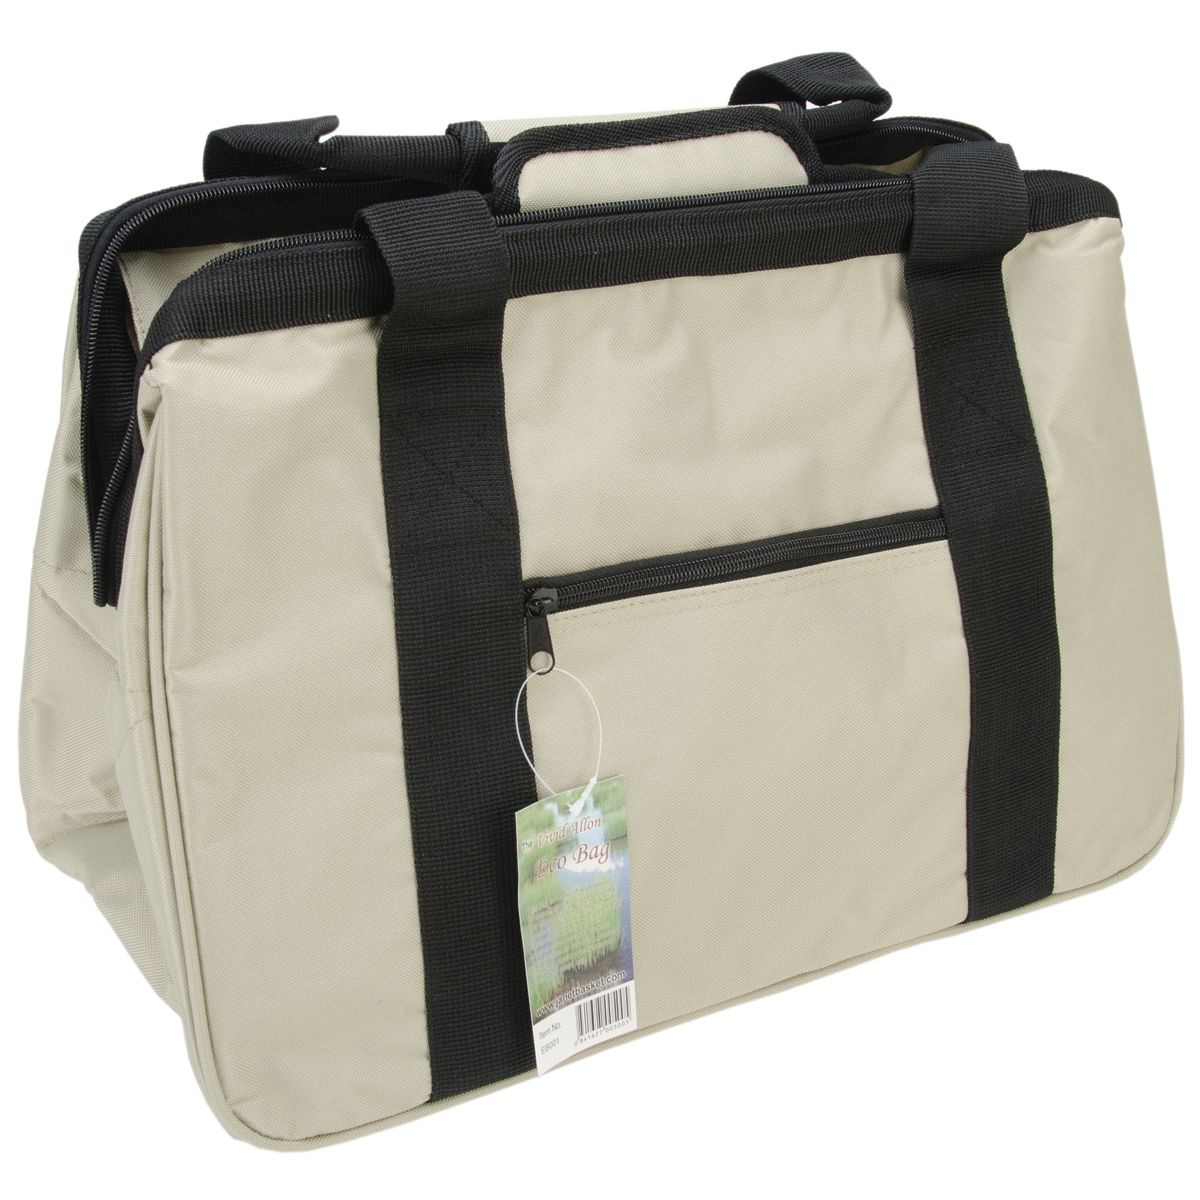 JanetBasket Eco Bag, 18-Inch x 10-Inch x 12-Inch, Olive Multi-Colored